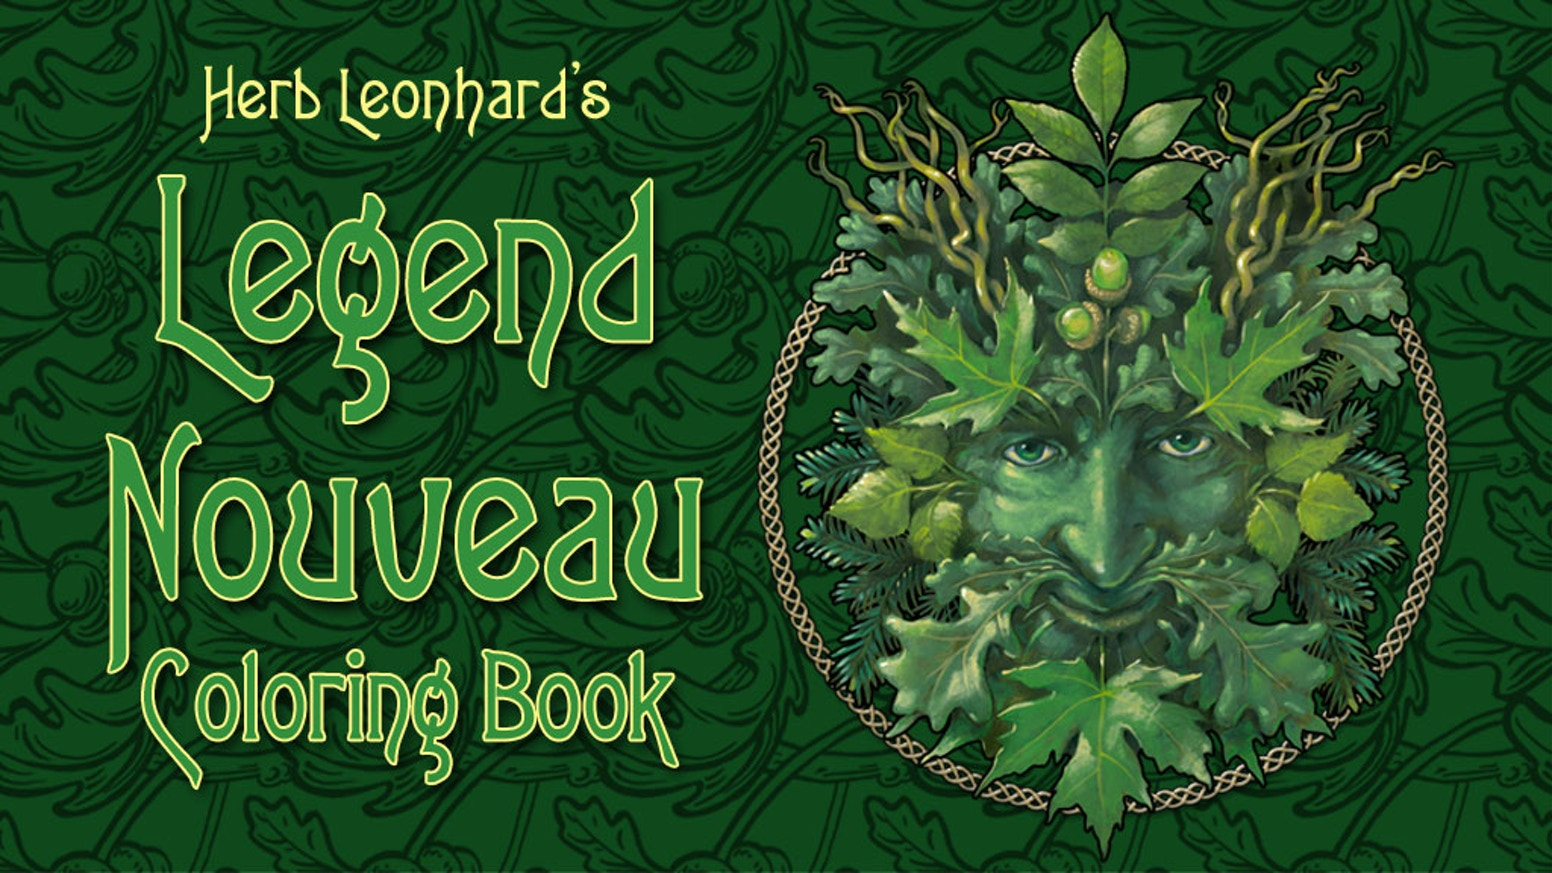 We have created another beautiful coloring book of legendary images in the art nouveau style. Now available for purchase.